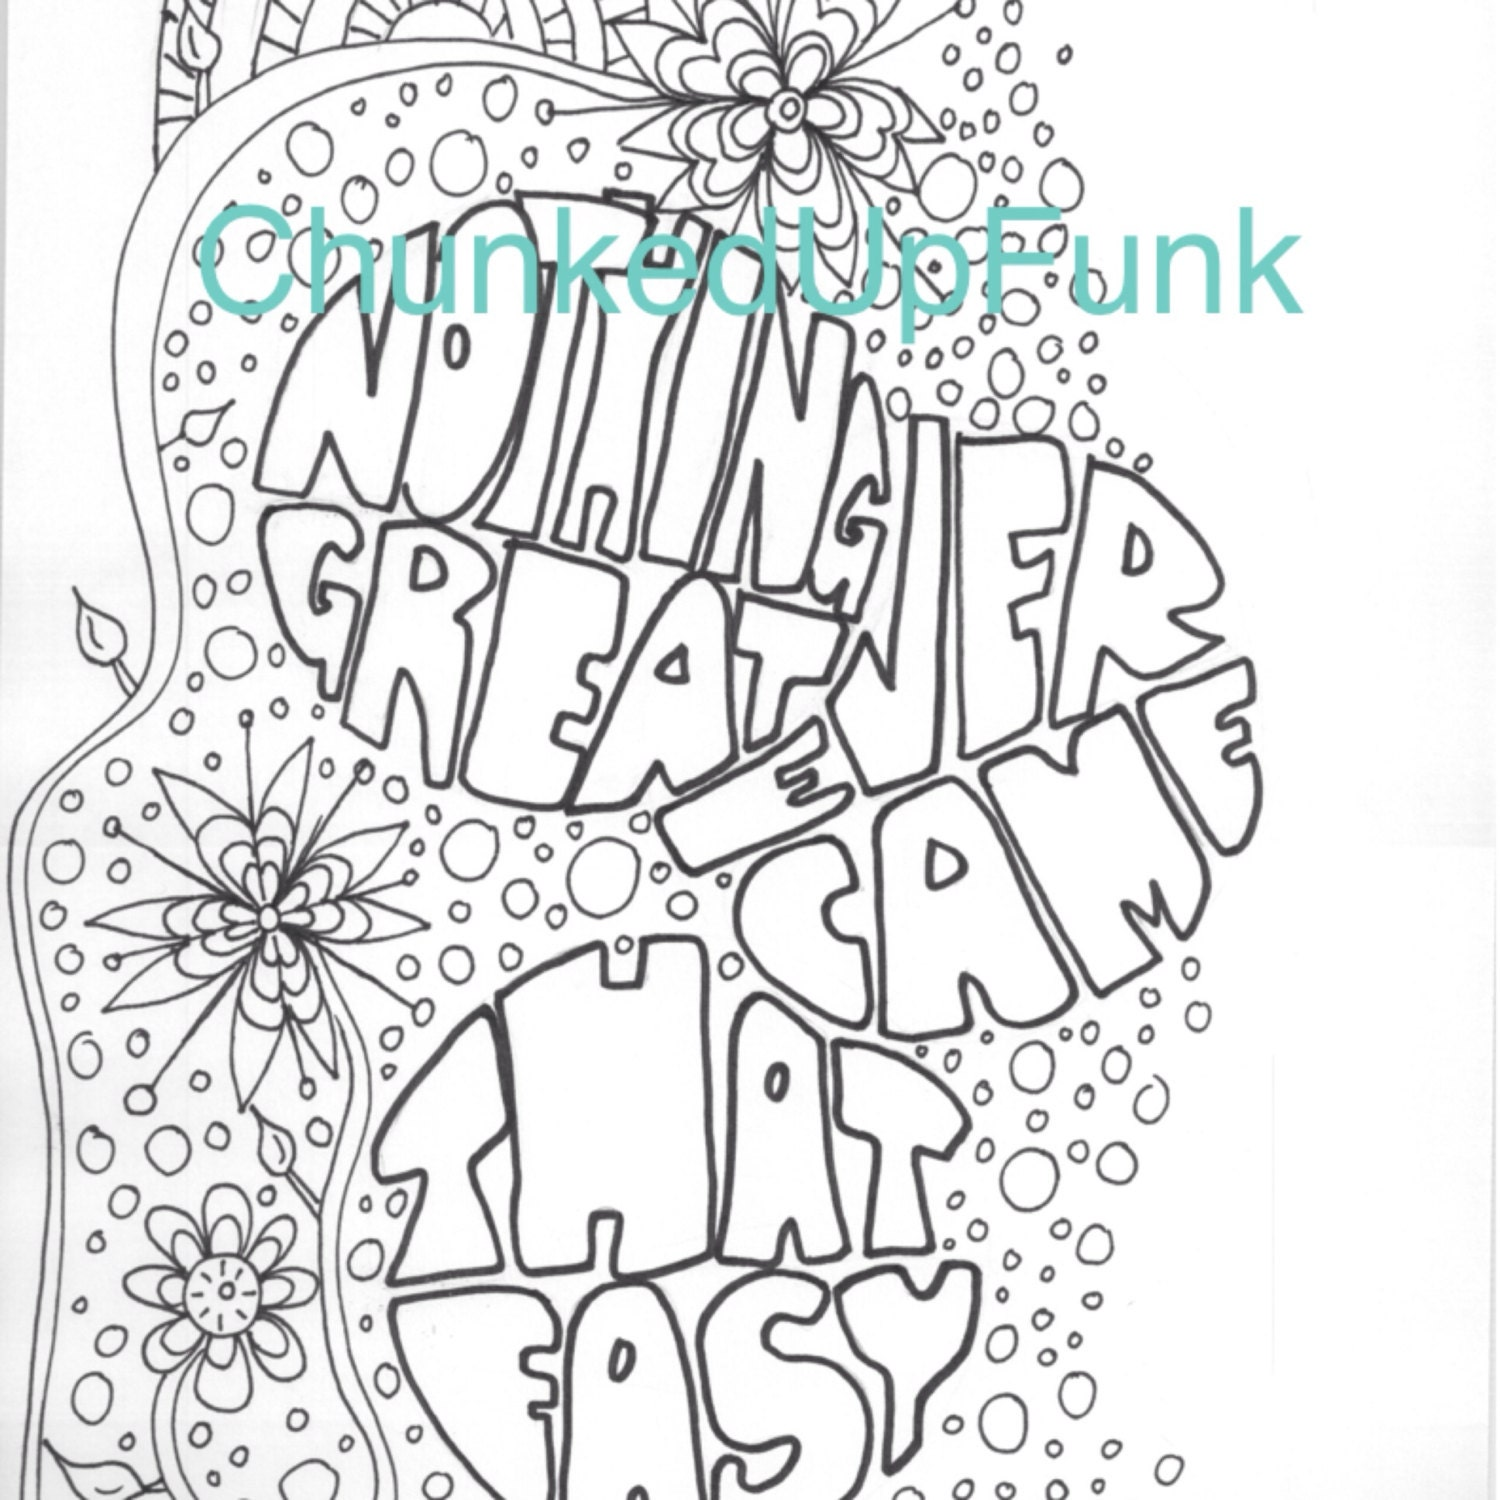 Printable coloring page inspirational art motivational for Inspirational adult coloring pages